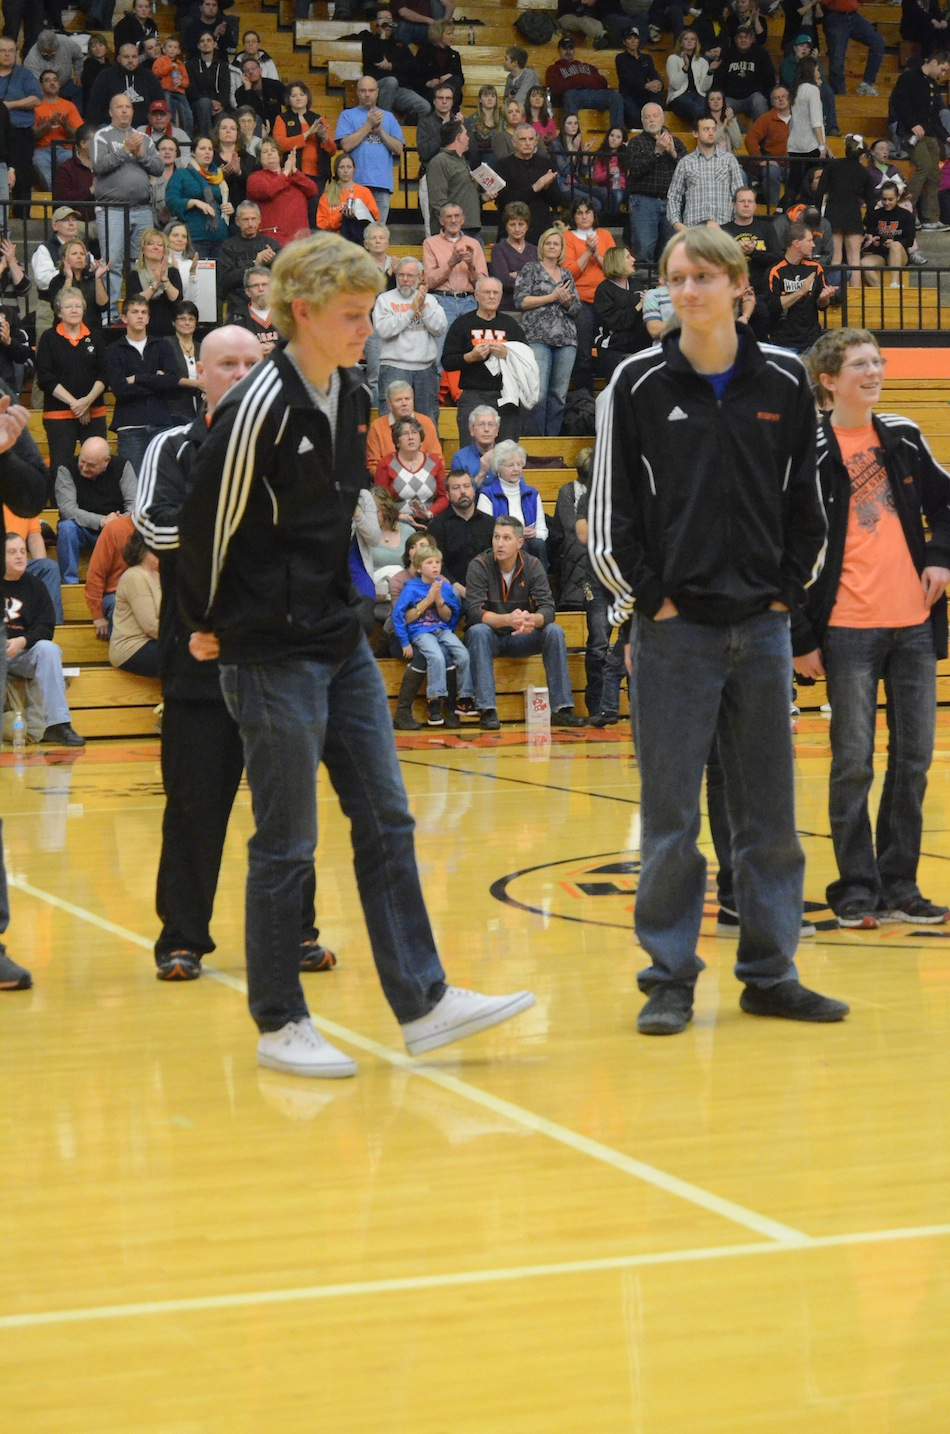 Warsaw seniors Jake Poyner (left) and Robert Murphy are honored Friday night at the boys basketball game. The pair of All-State performers led Warsaw to a fourth-place finish at the State Finals this past fall.